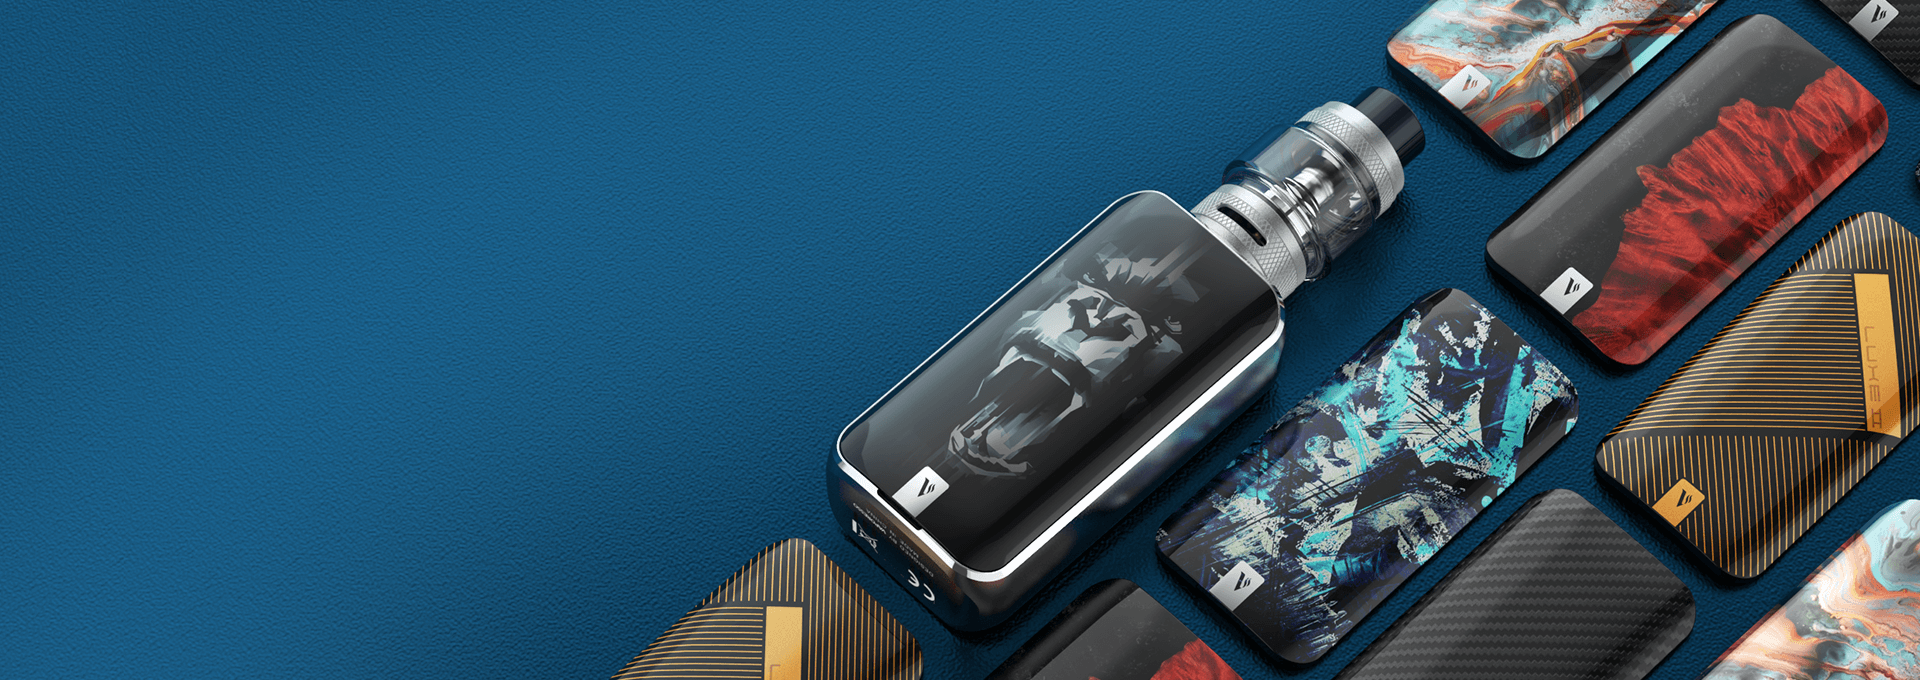 https://www.vaporesso.com/hubfs/imgs/product_img/luxe_2/pc/pc-hl-style.png